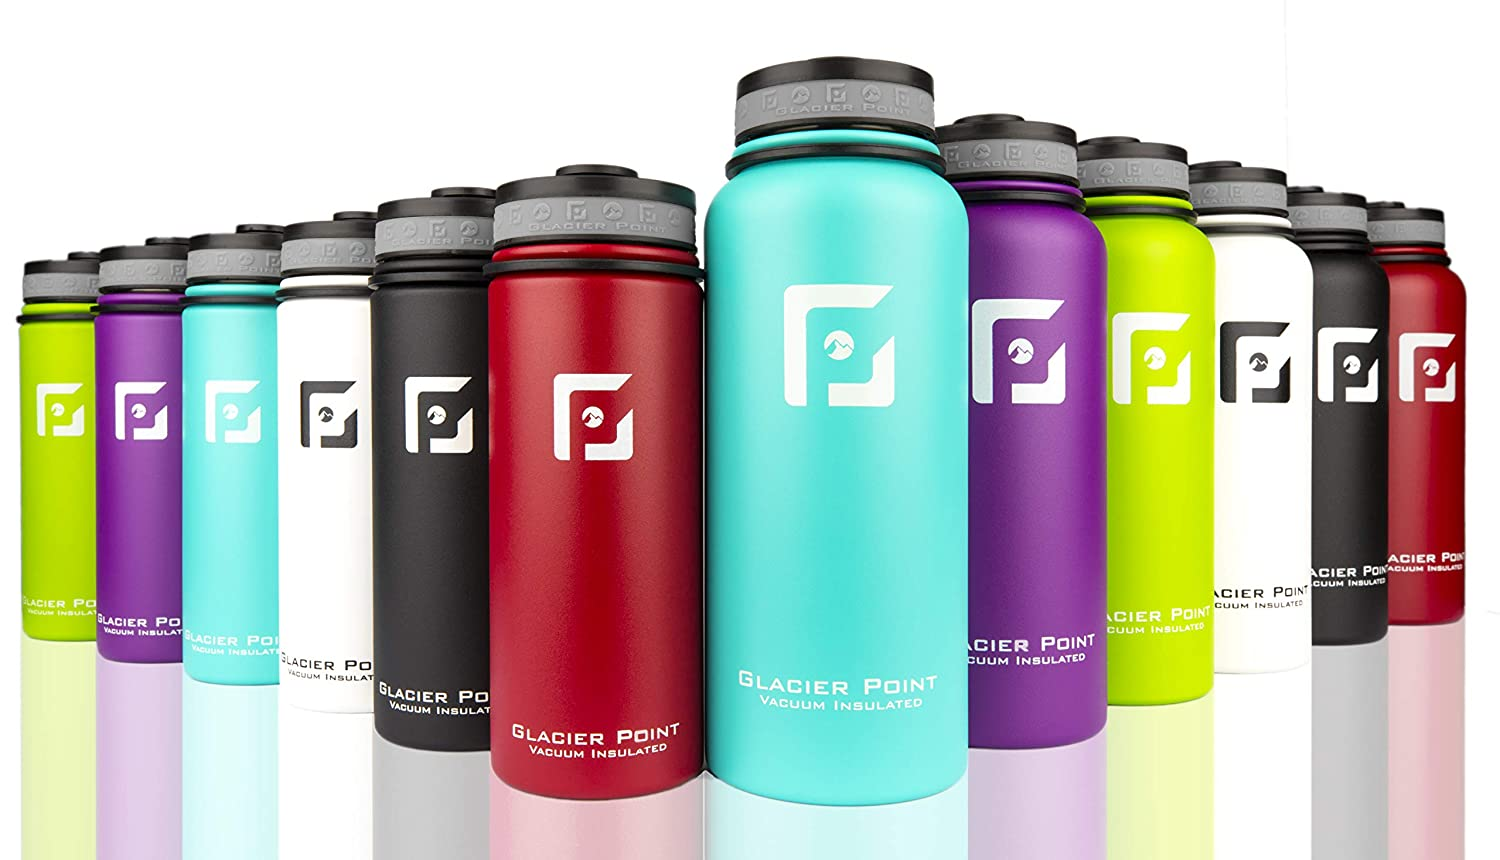 Glacier Point colorful stainless steel water bottles